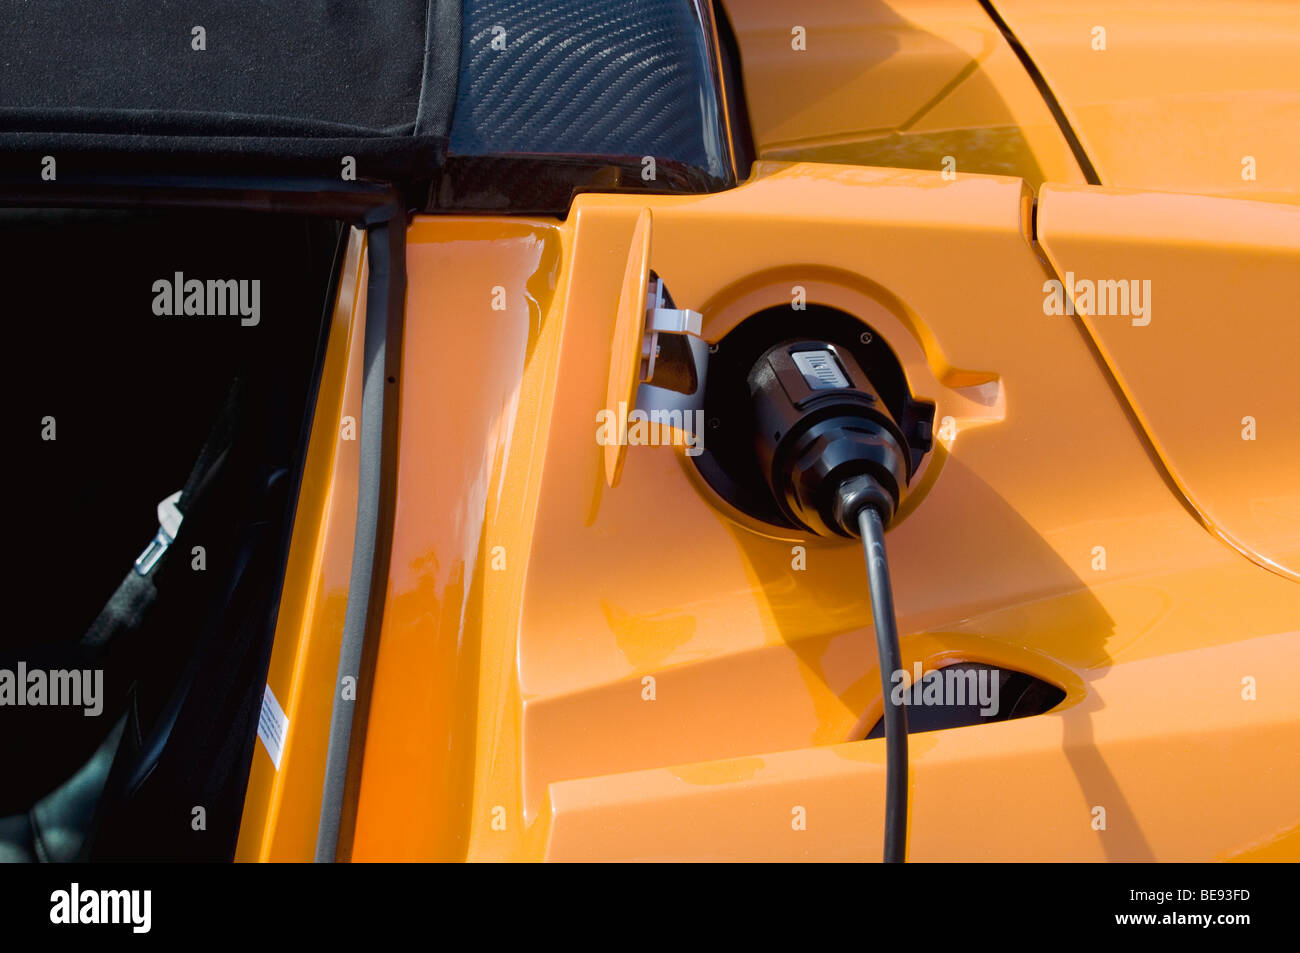 Electric car plugged into a socket, emission-free refueling, charging - Stock Image